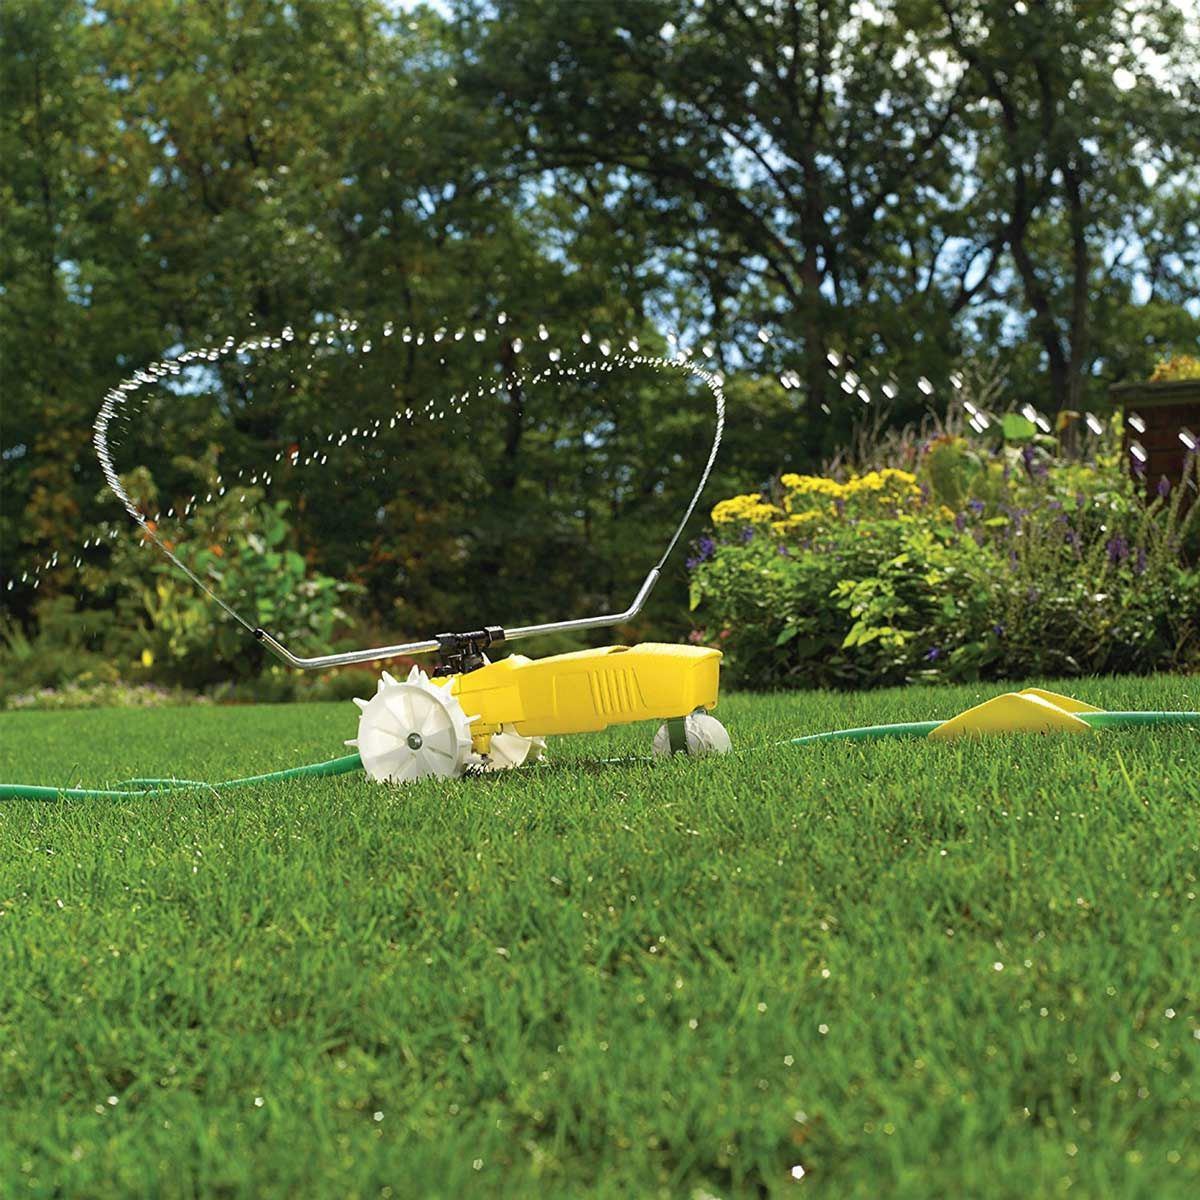 40 Best Lawn Care Products You Need This Spring Best Lawn Sprinkler Traveling Sprinkler Lawn Sprinklers